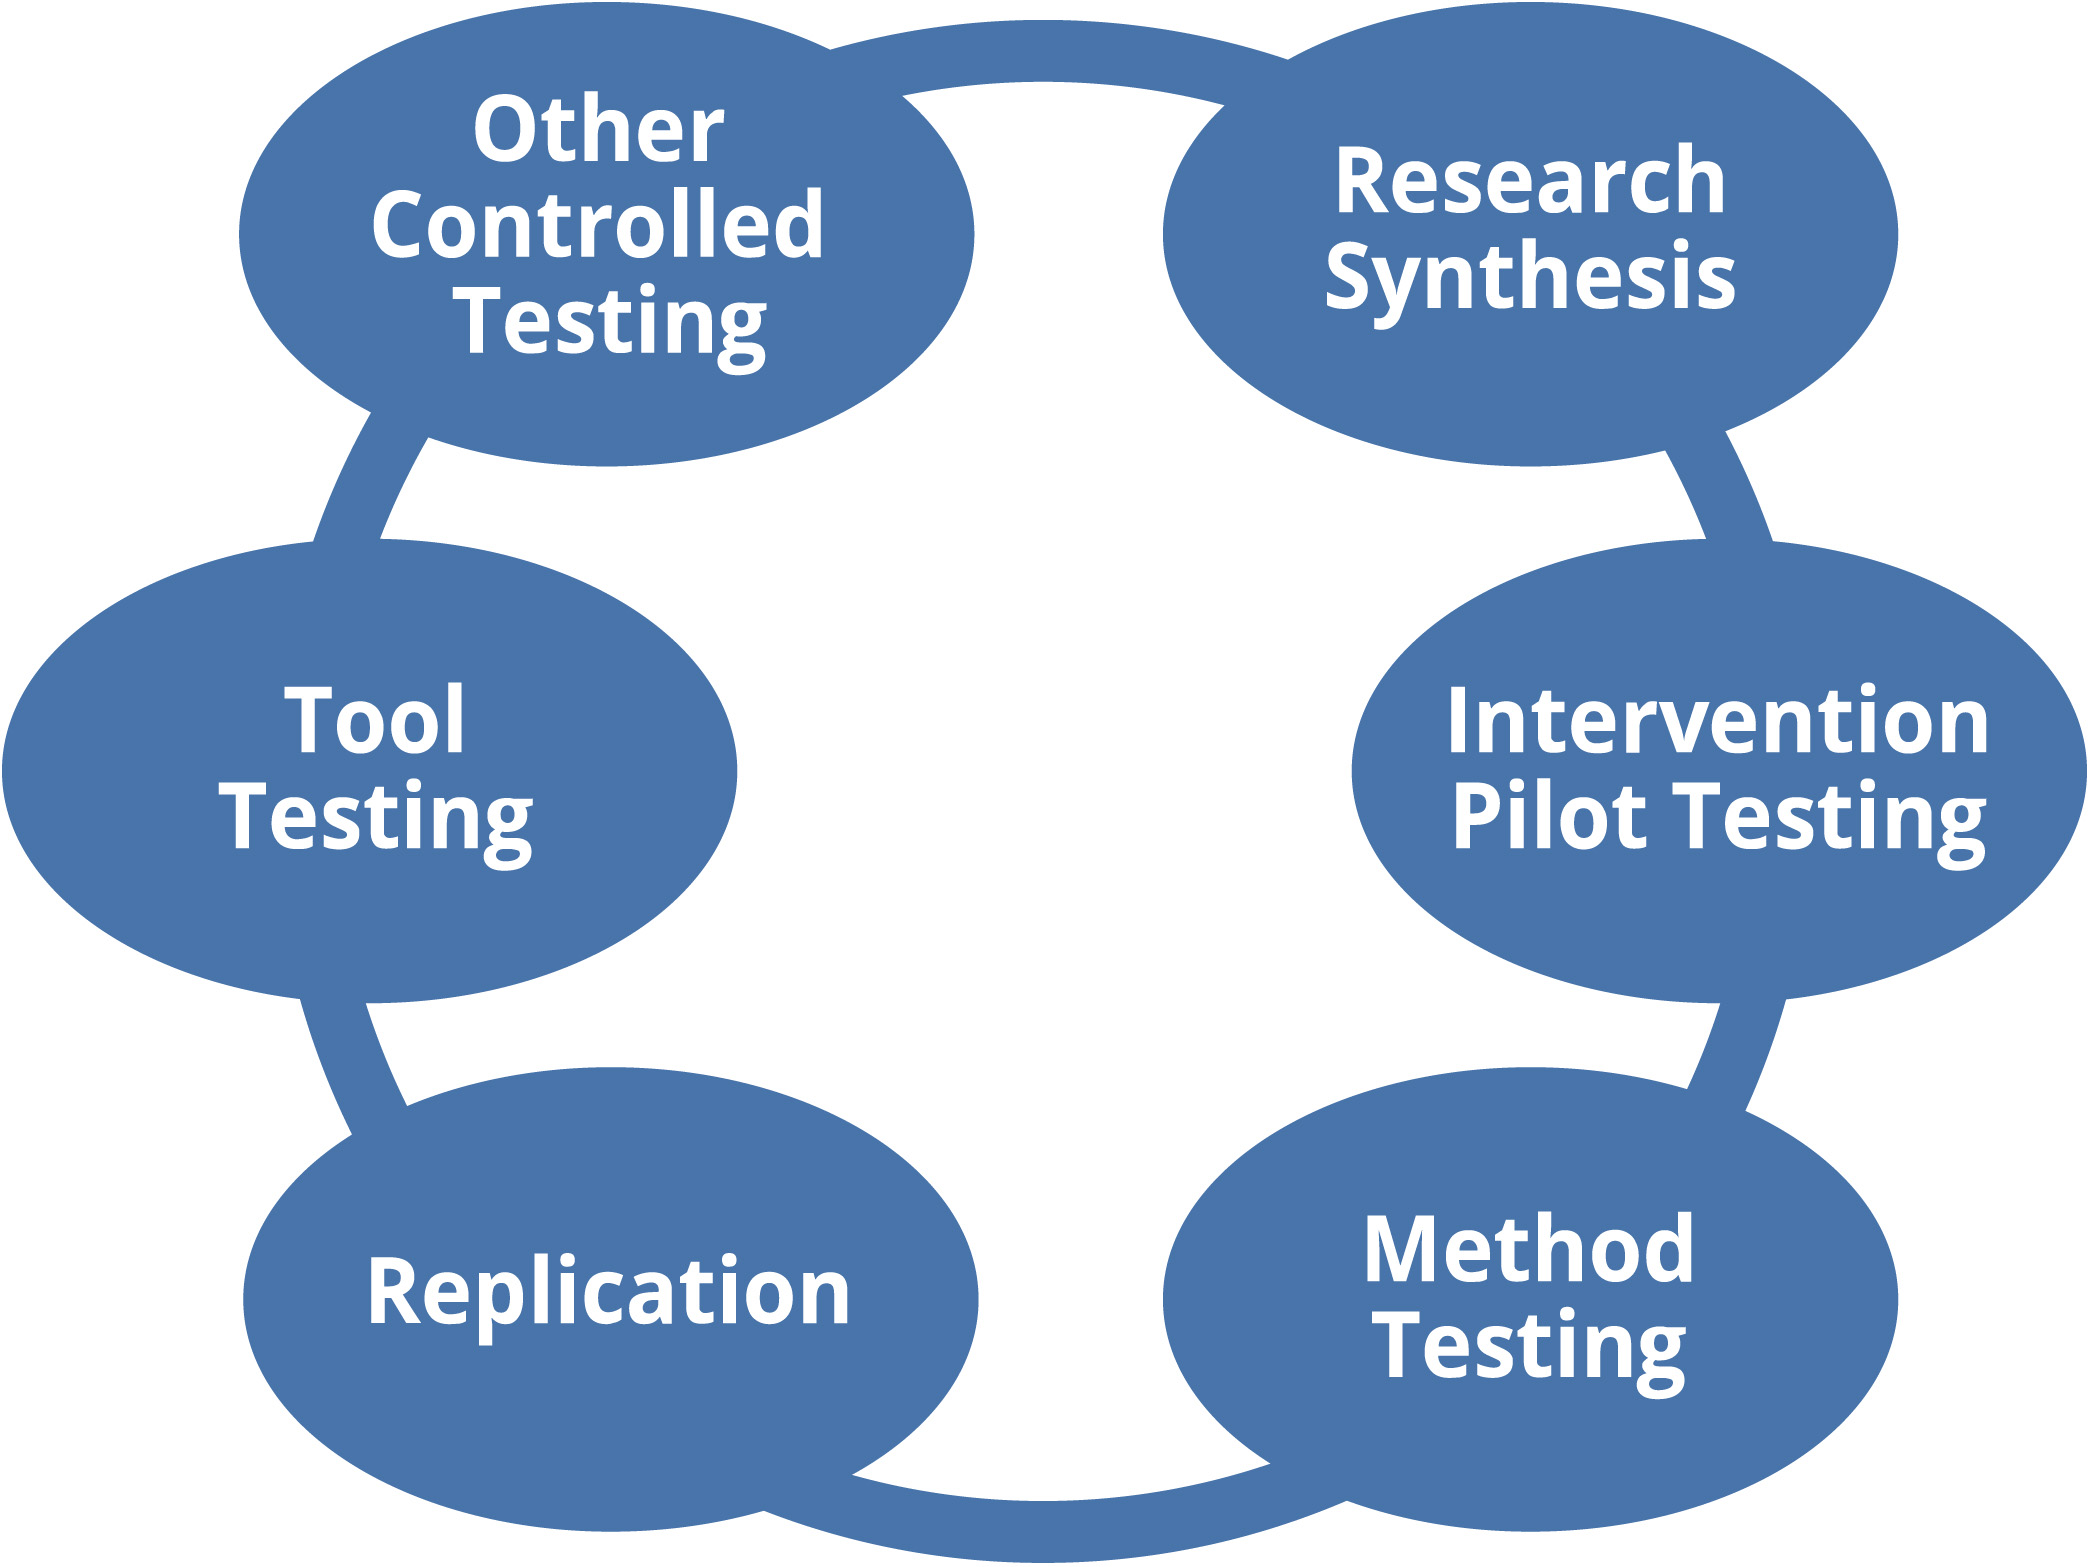 The application and synthesis category is represented as a light blue ring and includes six activities that we've identified that environmental health researchers tend to conduct within this category. These activities are represented as nodes along the ring and include: Replication, Method Testing, Tool Testing, Intervention Pilot Testing, Research Synthesis and Other Controlled Testing.